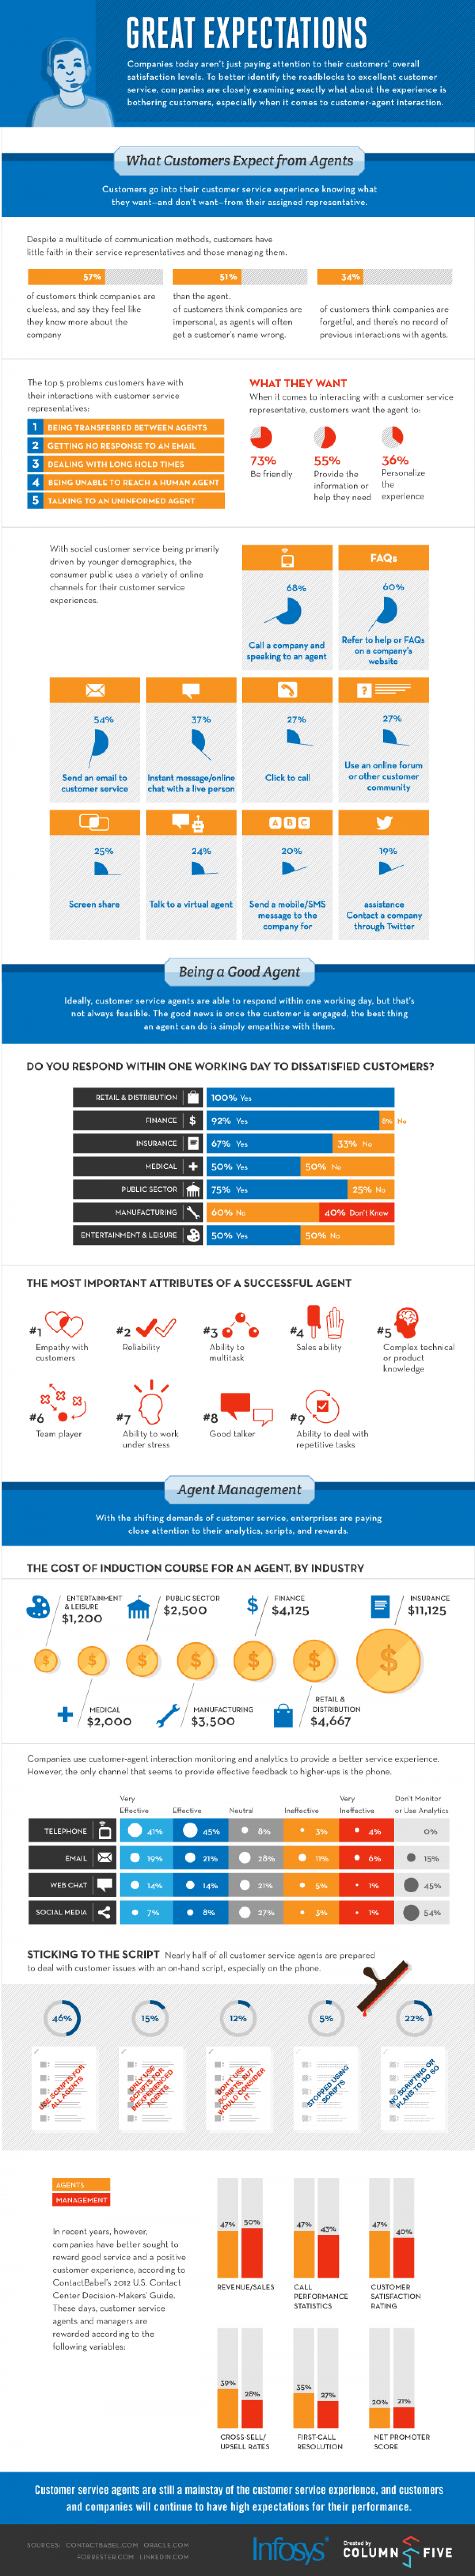 What Customers Expect from Agents Infographic